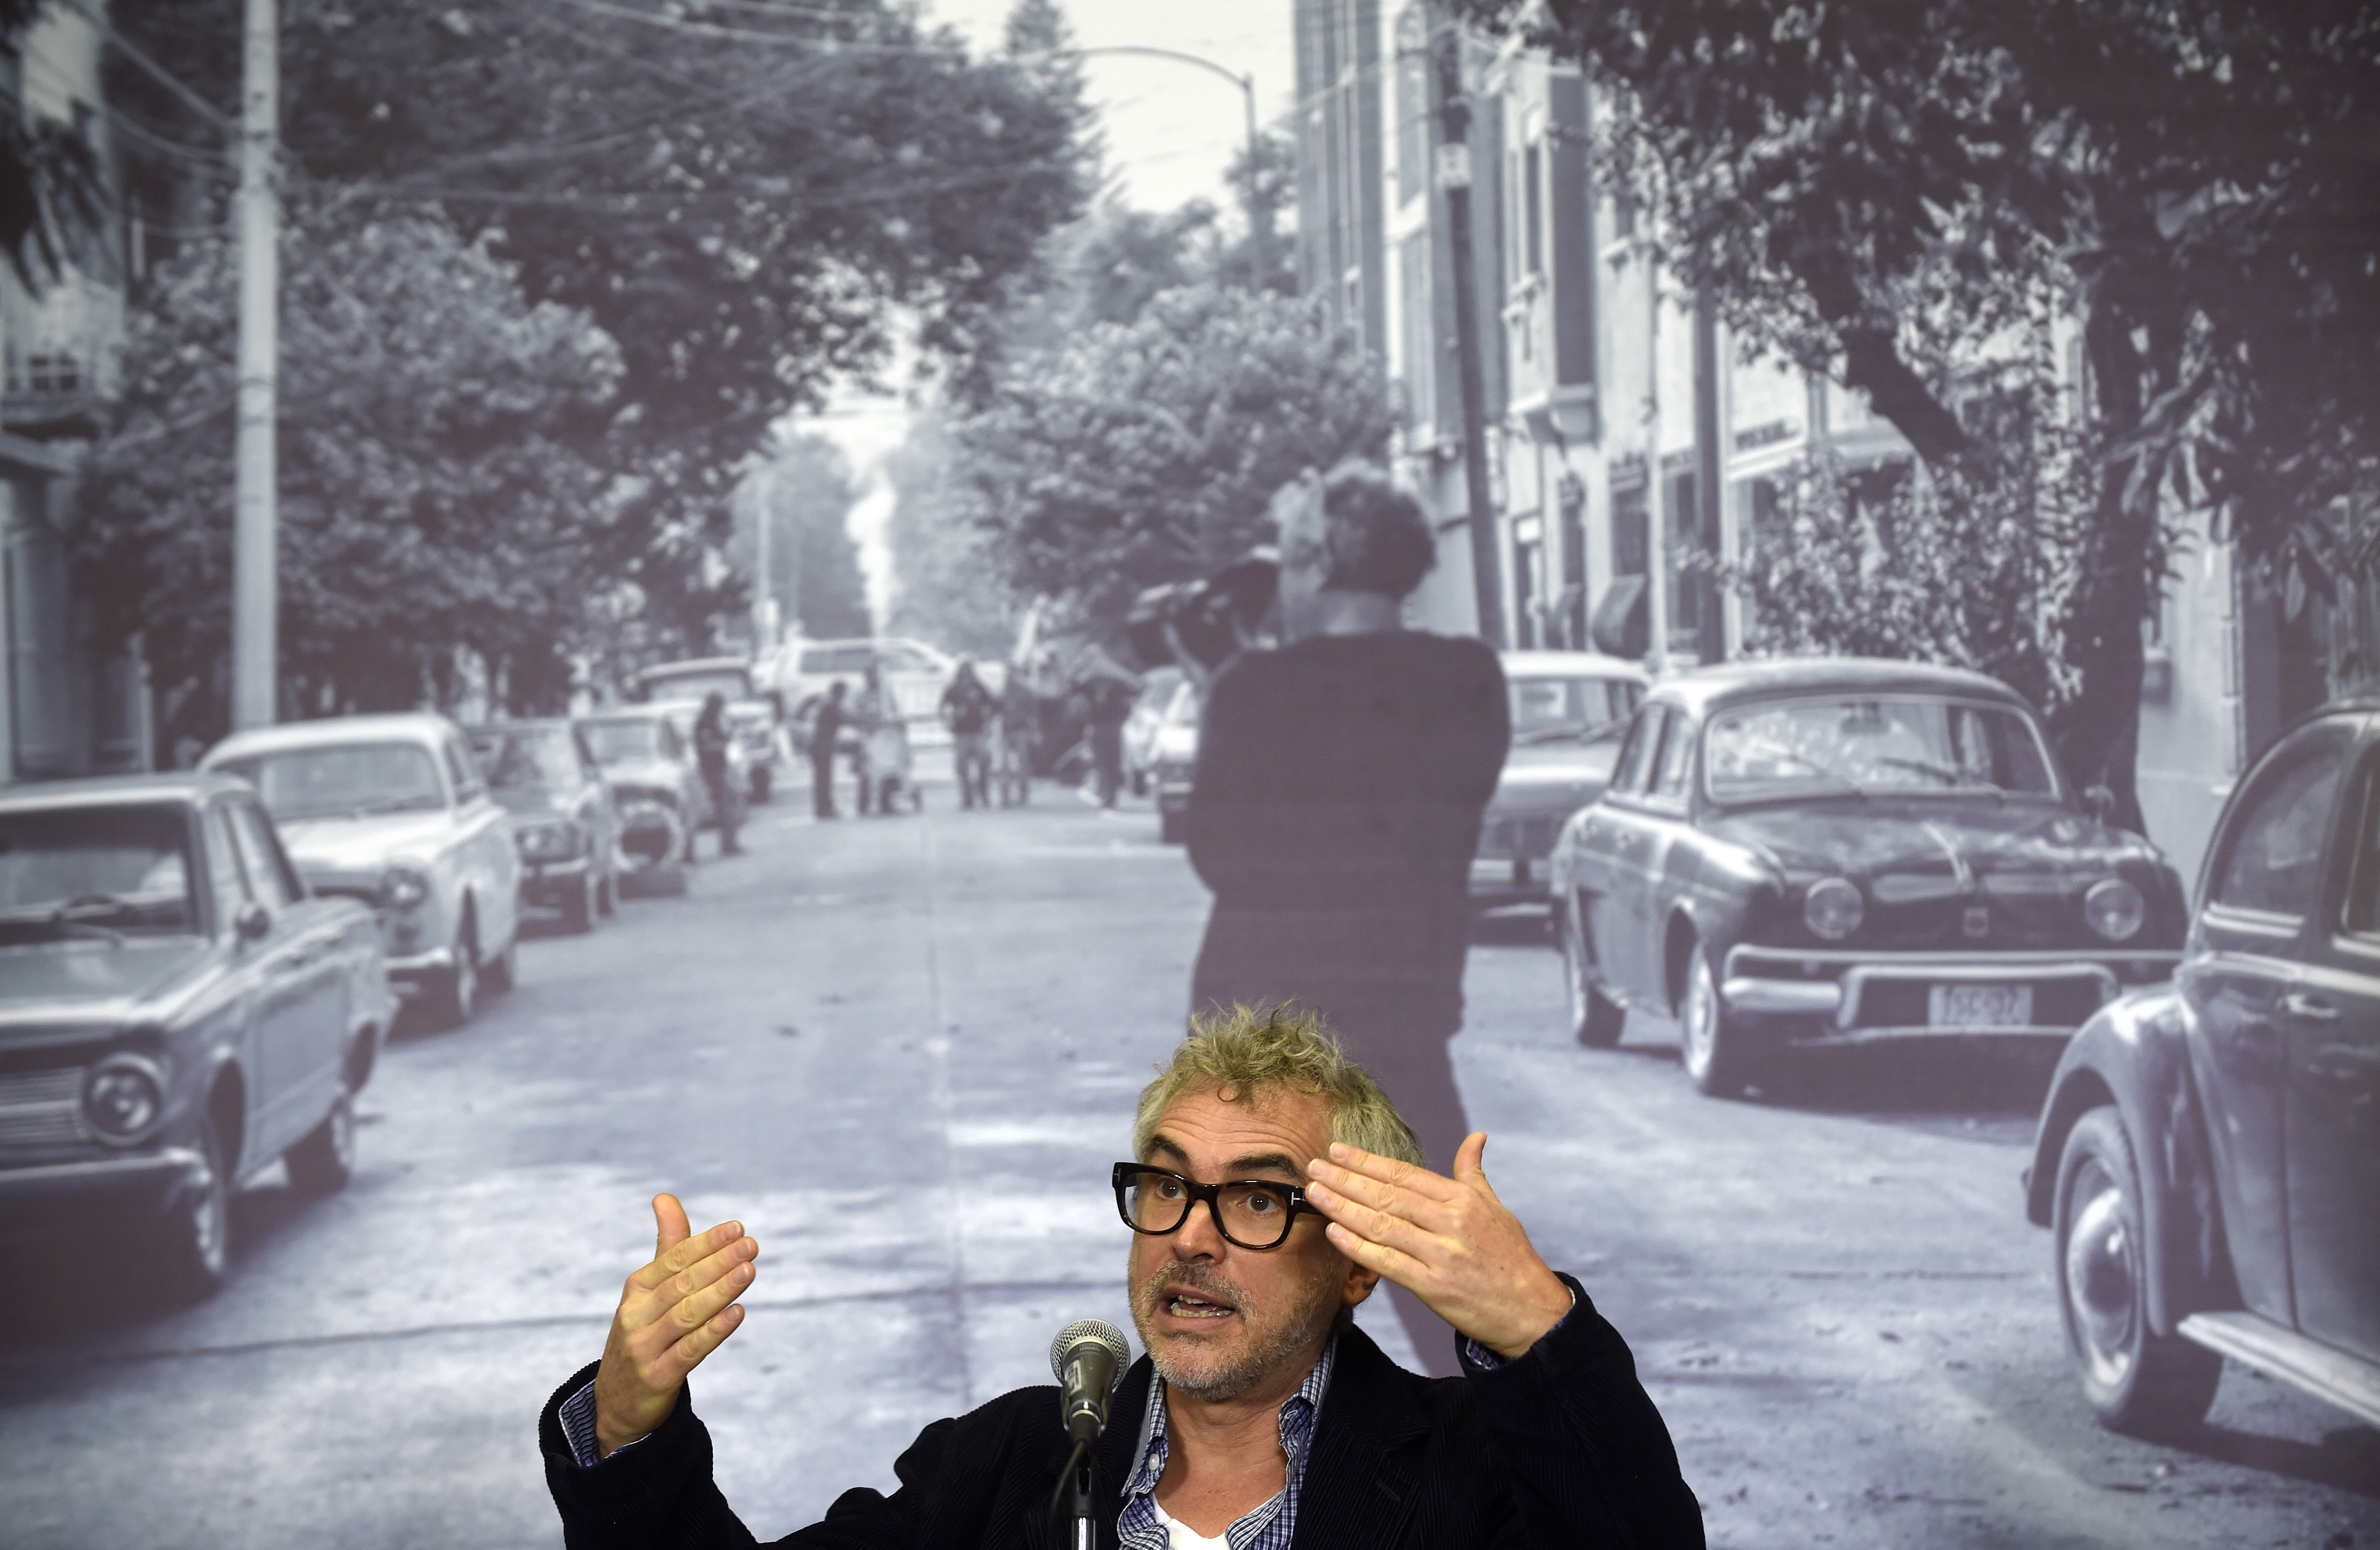 Oscar-winning director Alfonso Cuarón has announced the name of his new movie!